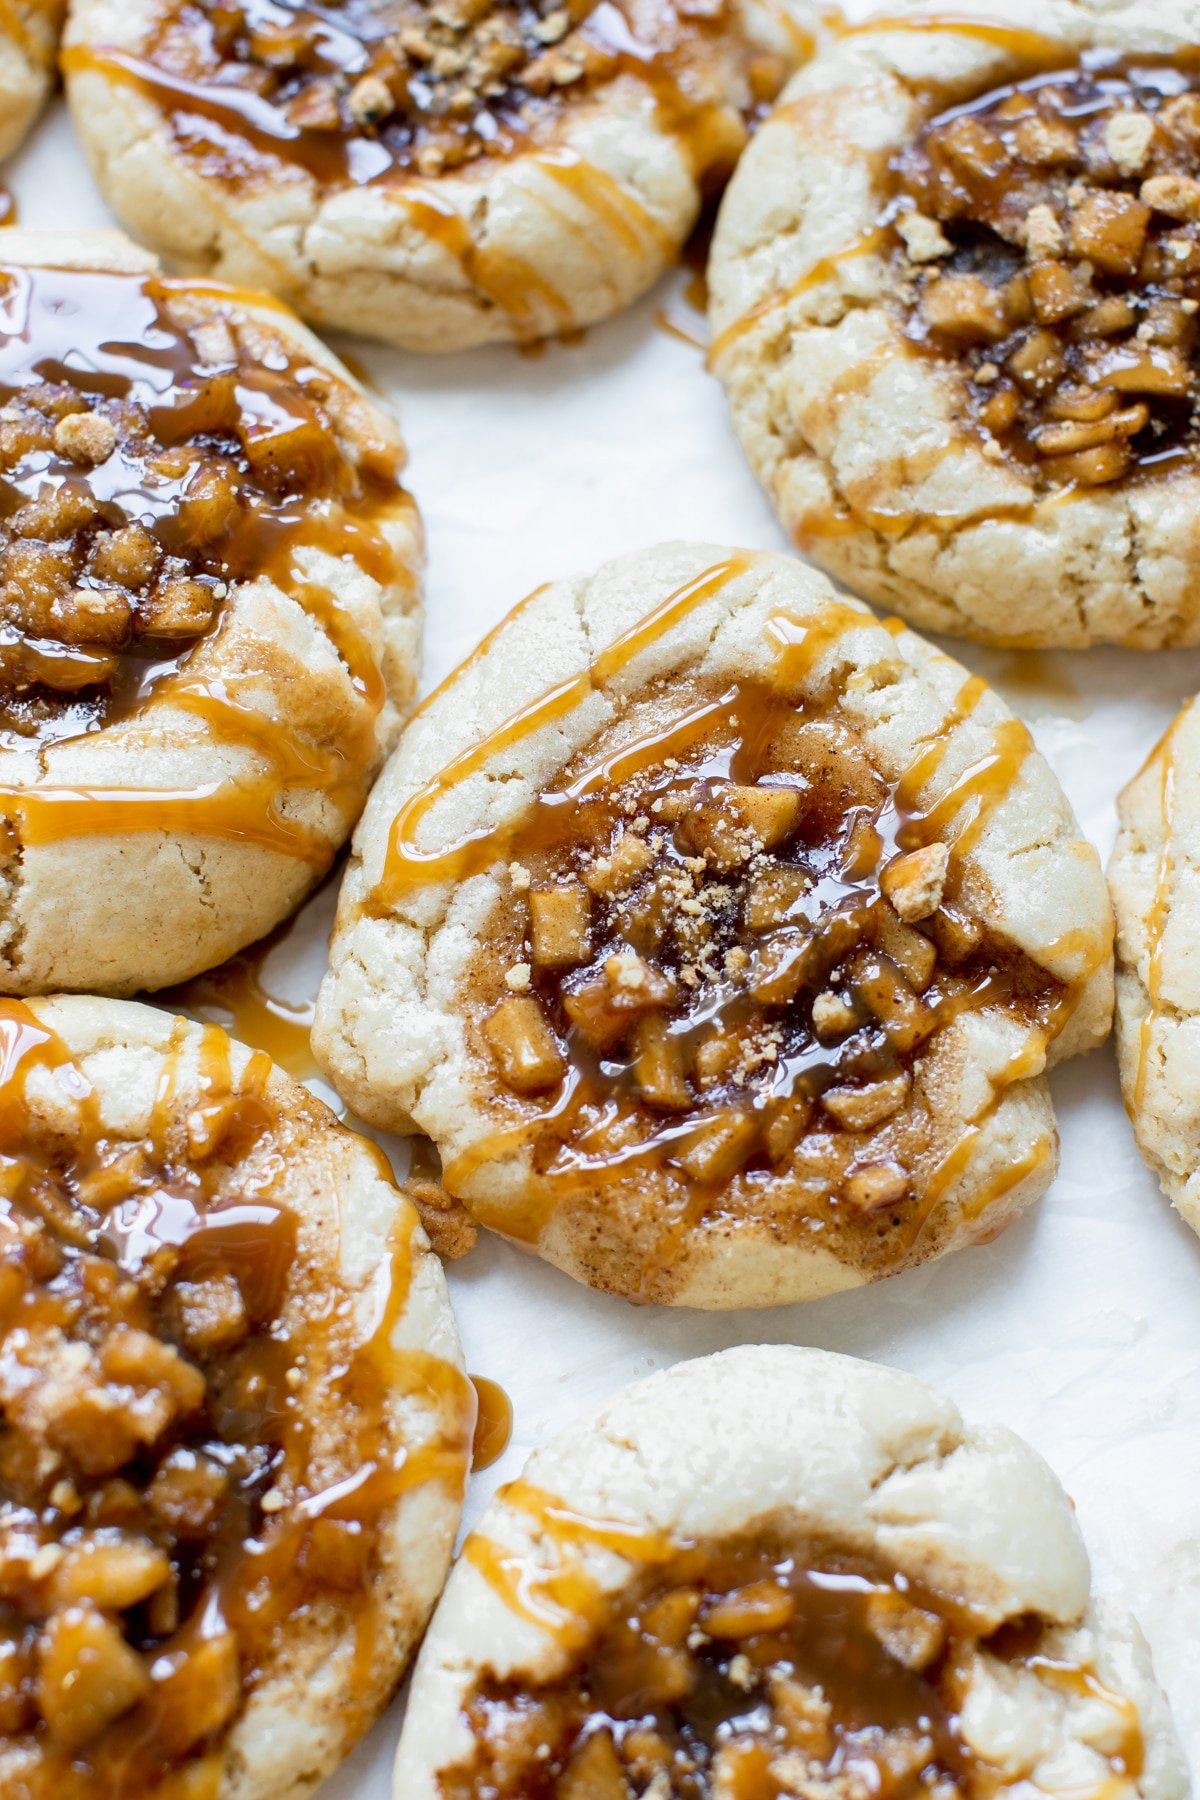 sugar cookies with an apple pie filling in the center with a caramel drizzle on top